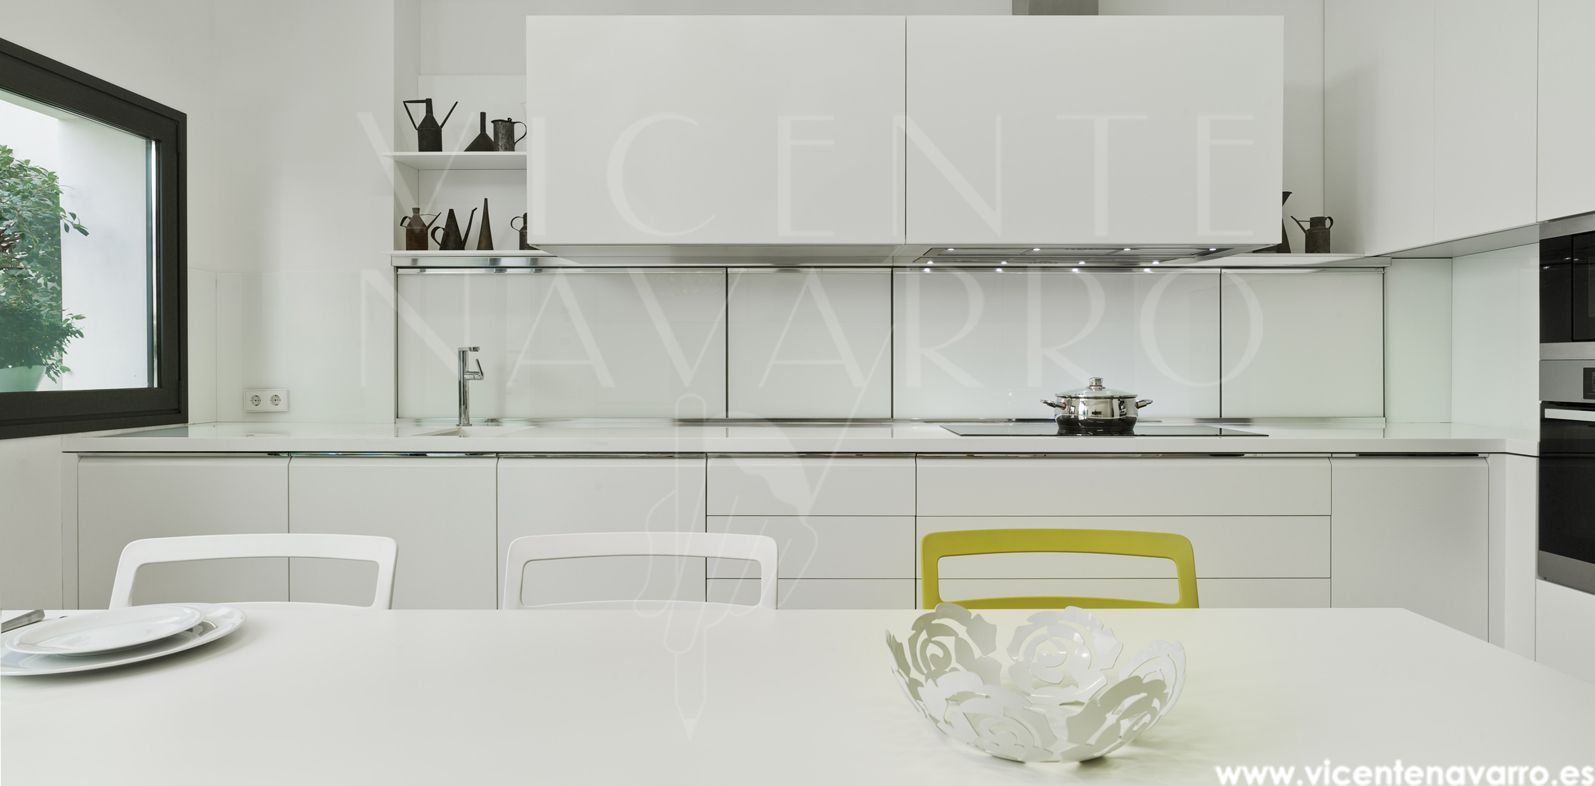 Vicente Navarro Kitchens Pinterest # Muebles Y Cocinas Daxa